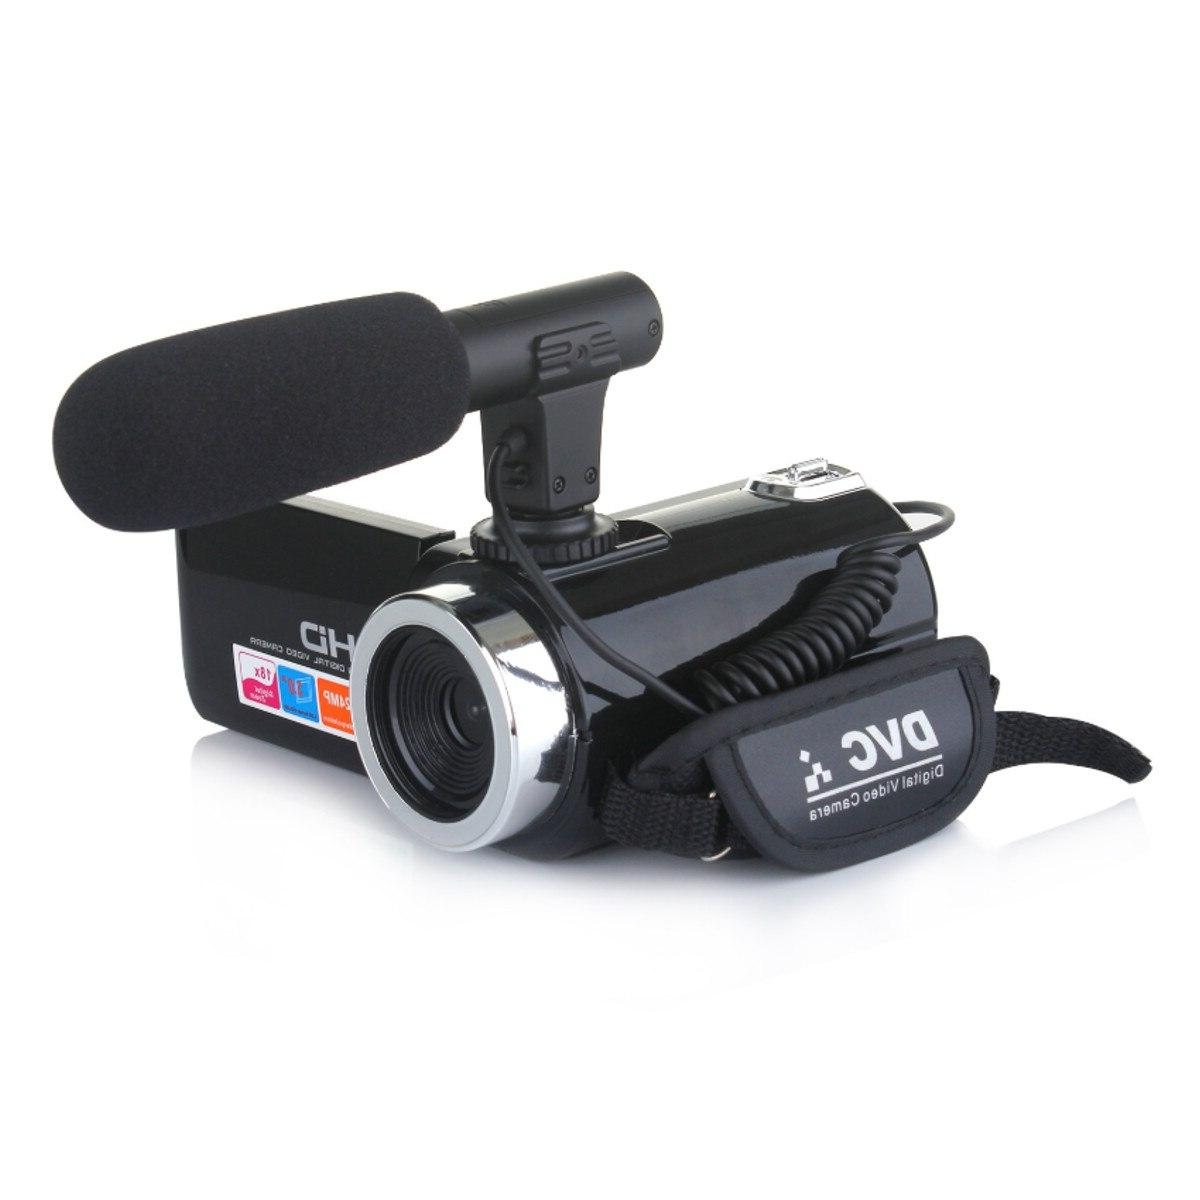 Multifunctional Camcorder IR <font><b>Night</b></font> <font><b>Video</b></font> 3 Inch 1080P 18X Zoom <font><b>Camera</b></font> With Mic